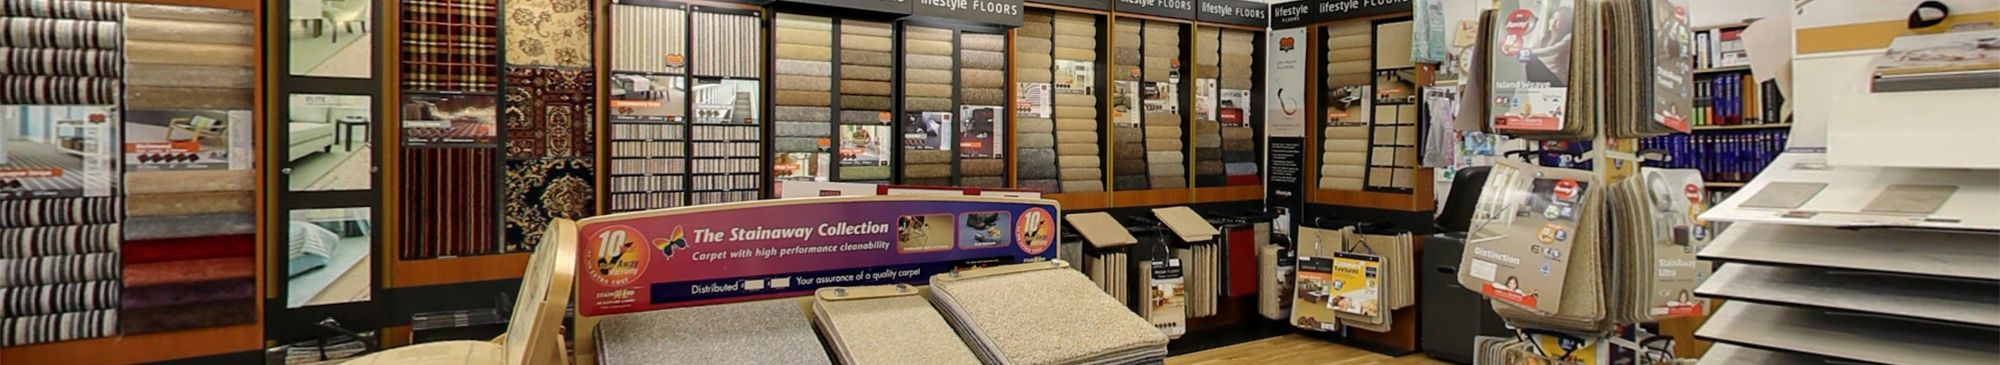 Carpet & Vinyl Showroom